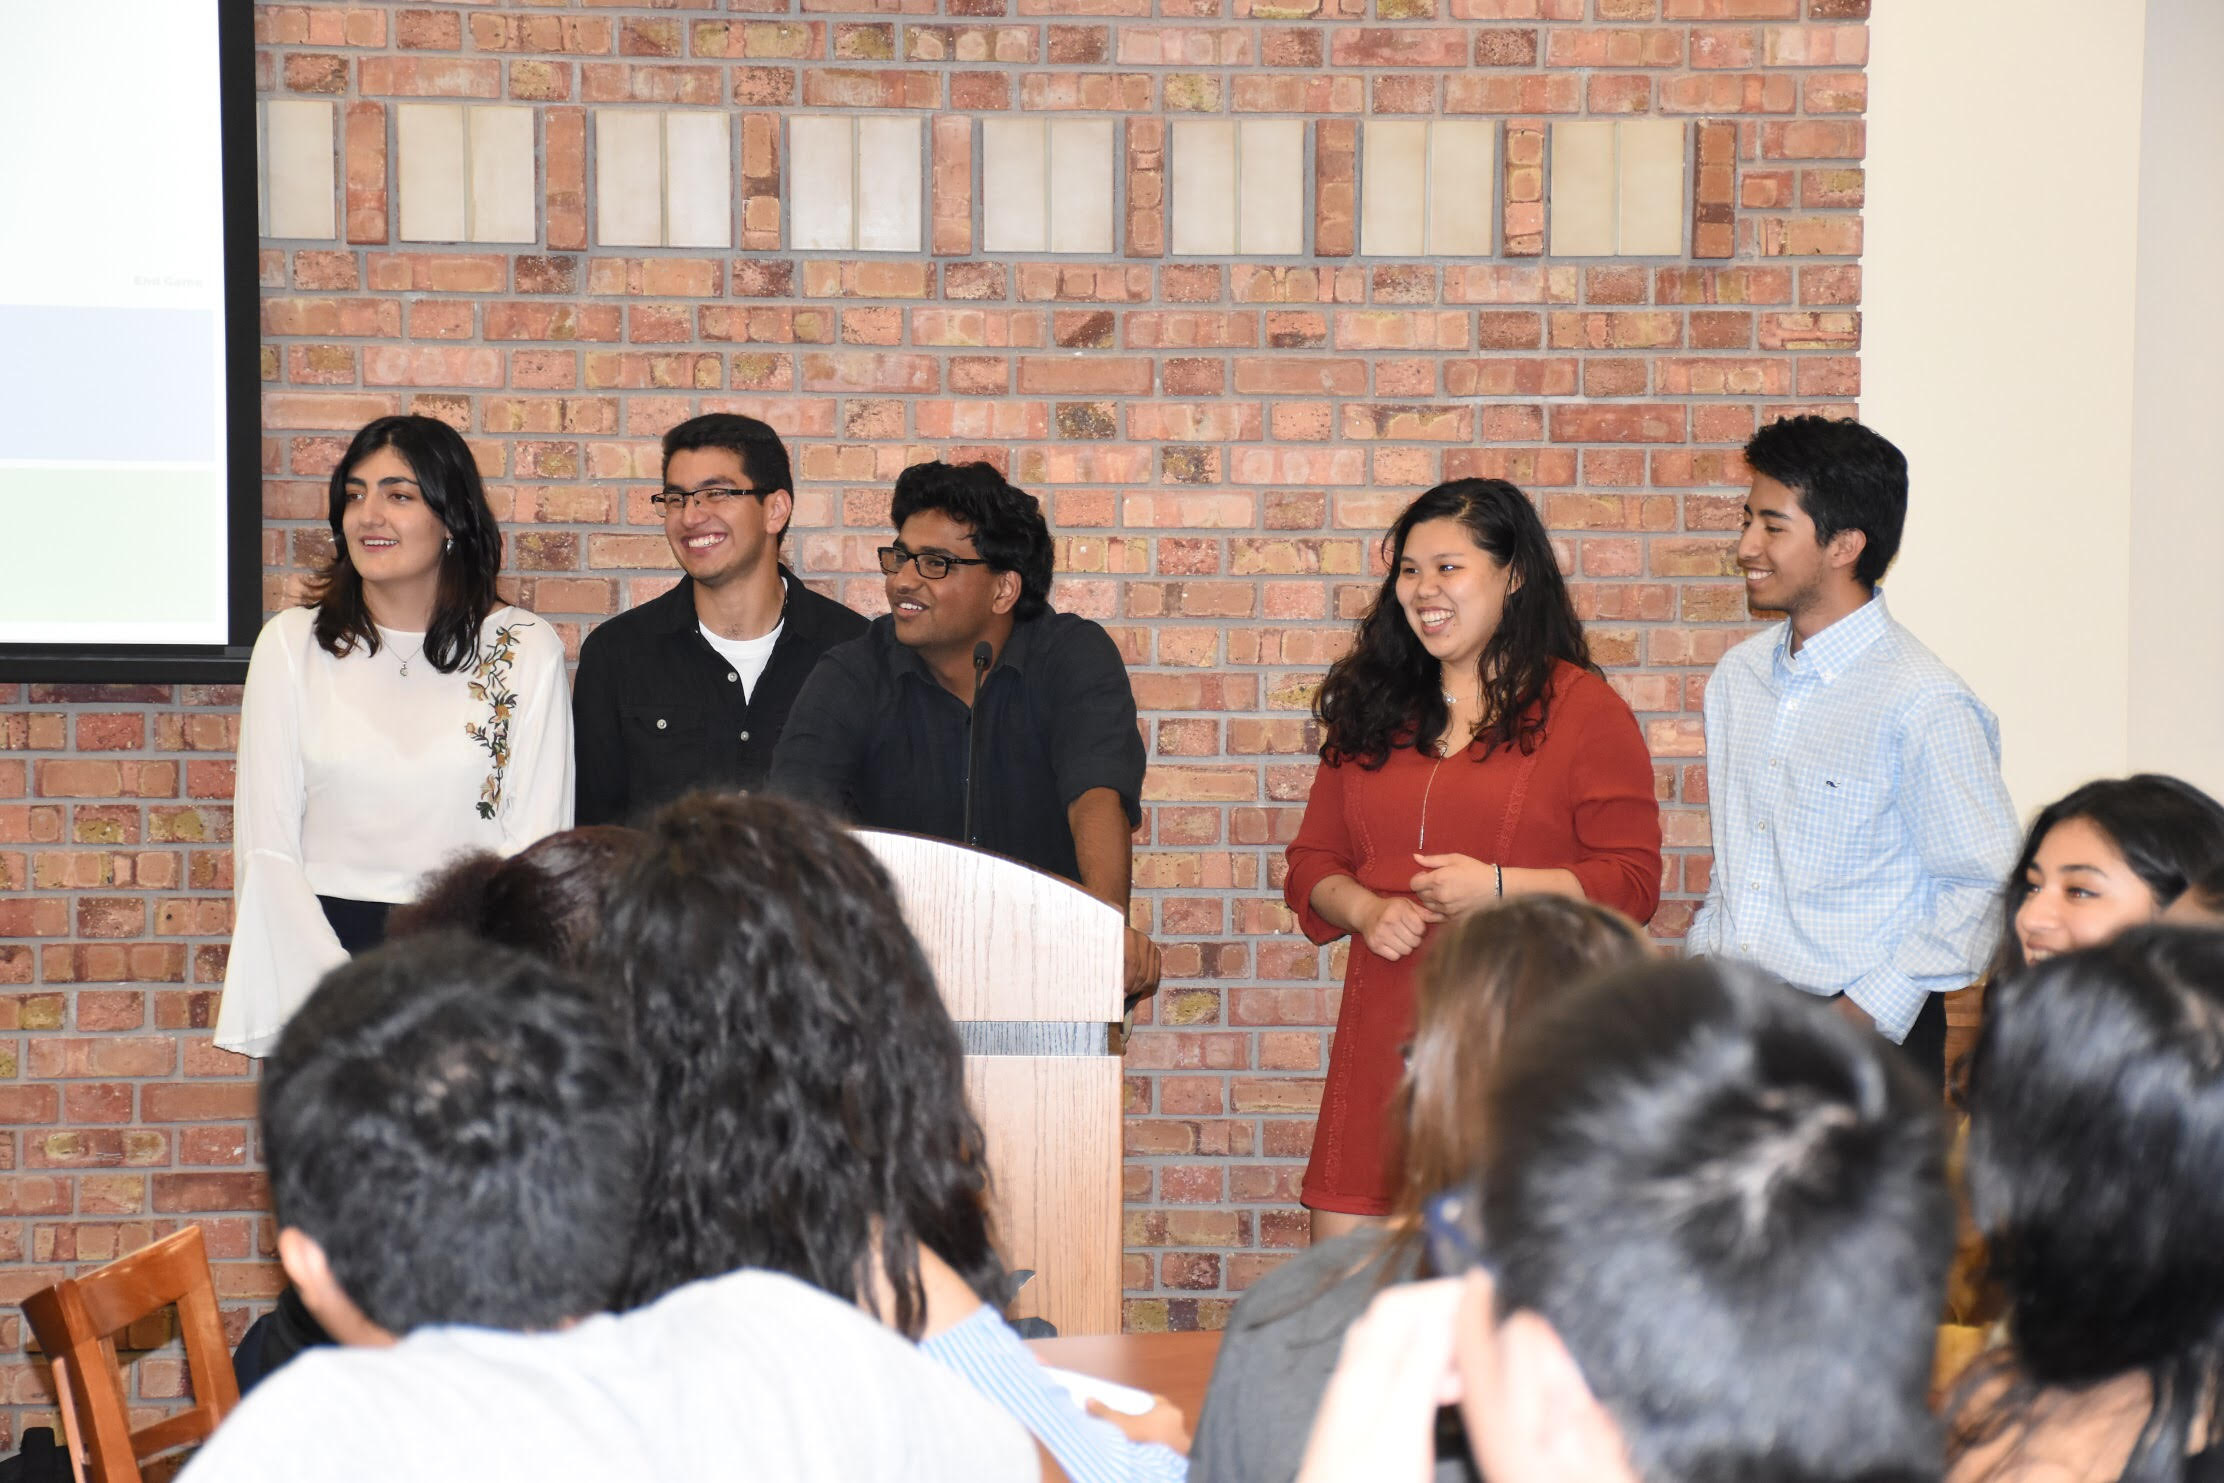 International Club officers left to right. Andrea (Andie) Molano, Anthony Avalos, Vamsi Garghi, Michelle Quach, and Alvaro Velasquez. Photo by Trinh Tran